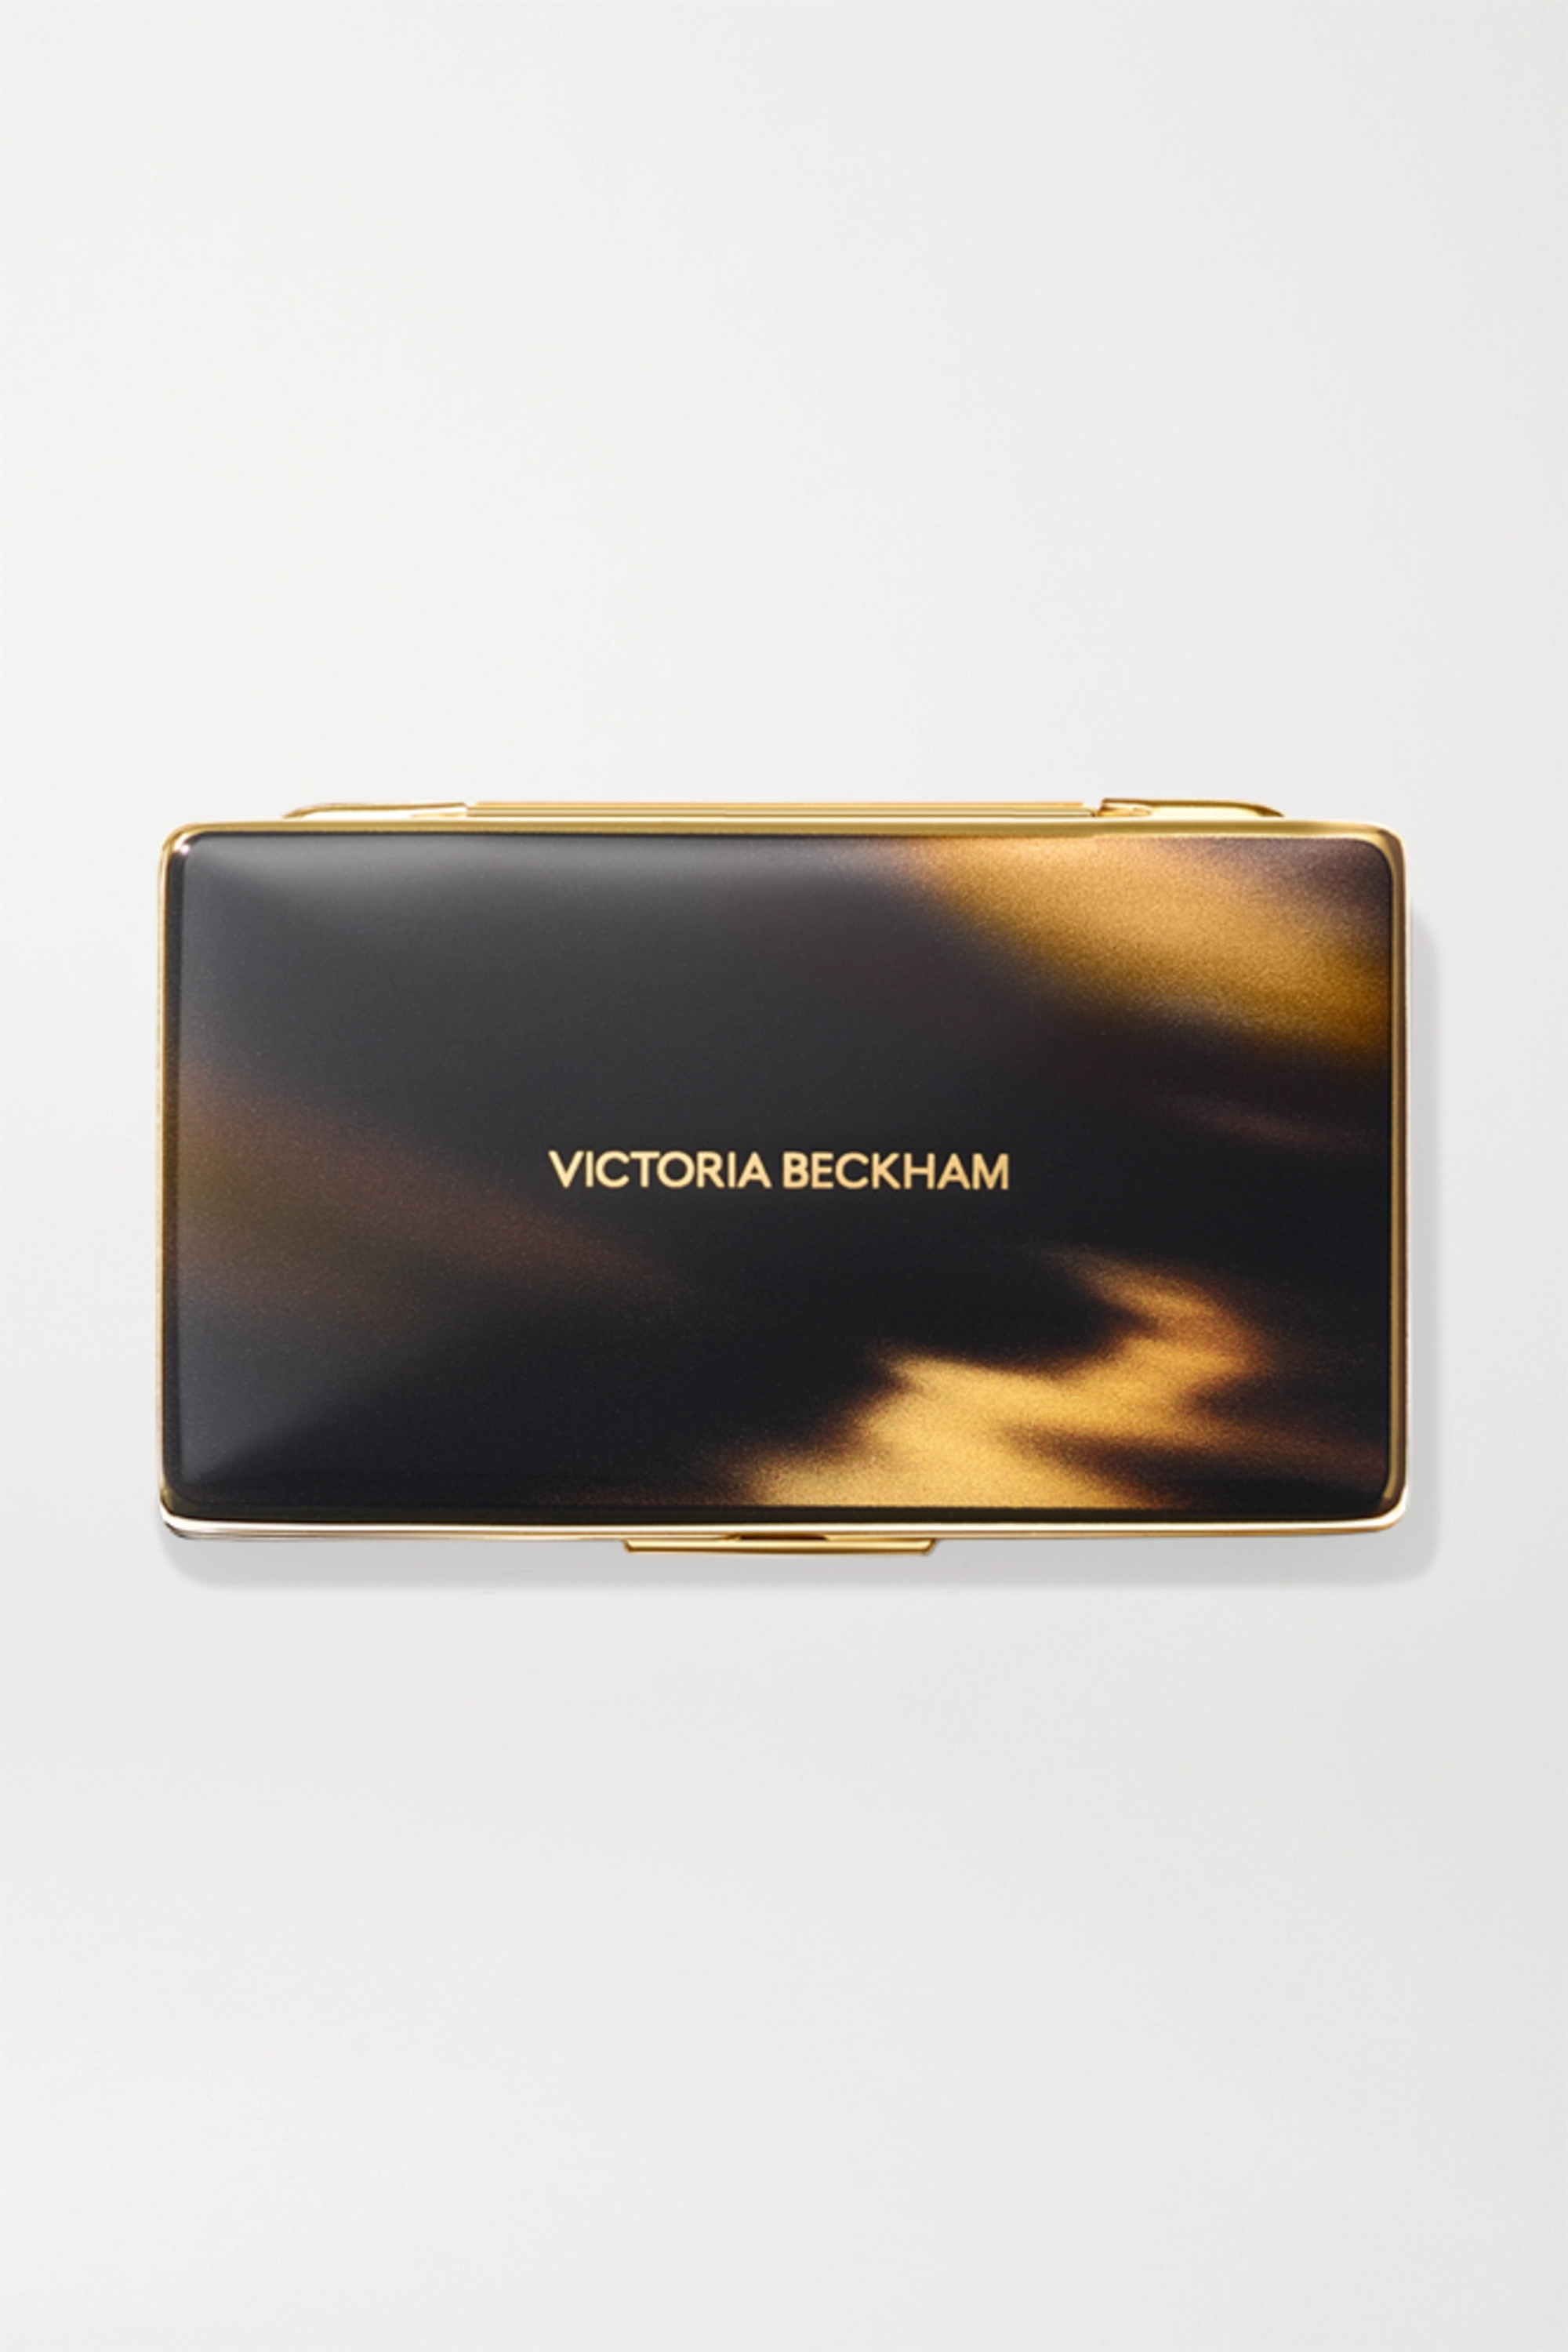 Victoria Beckham Beauty Smoky Eye Brick - Signature